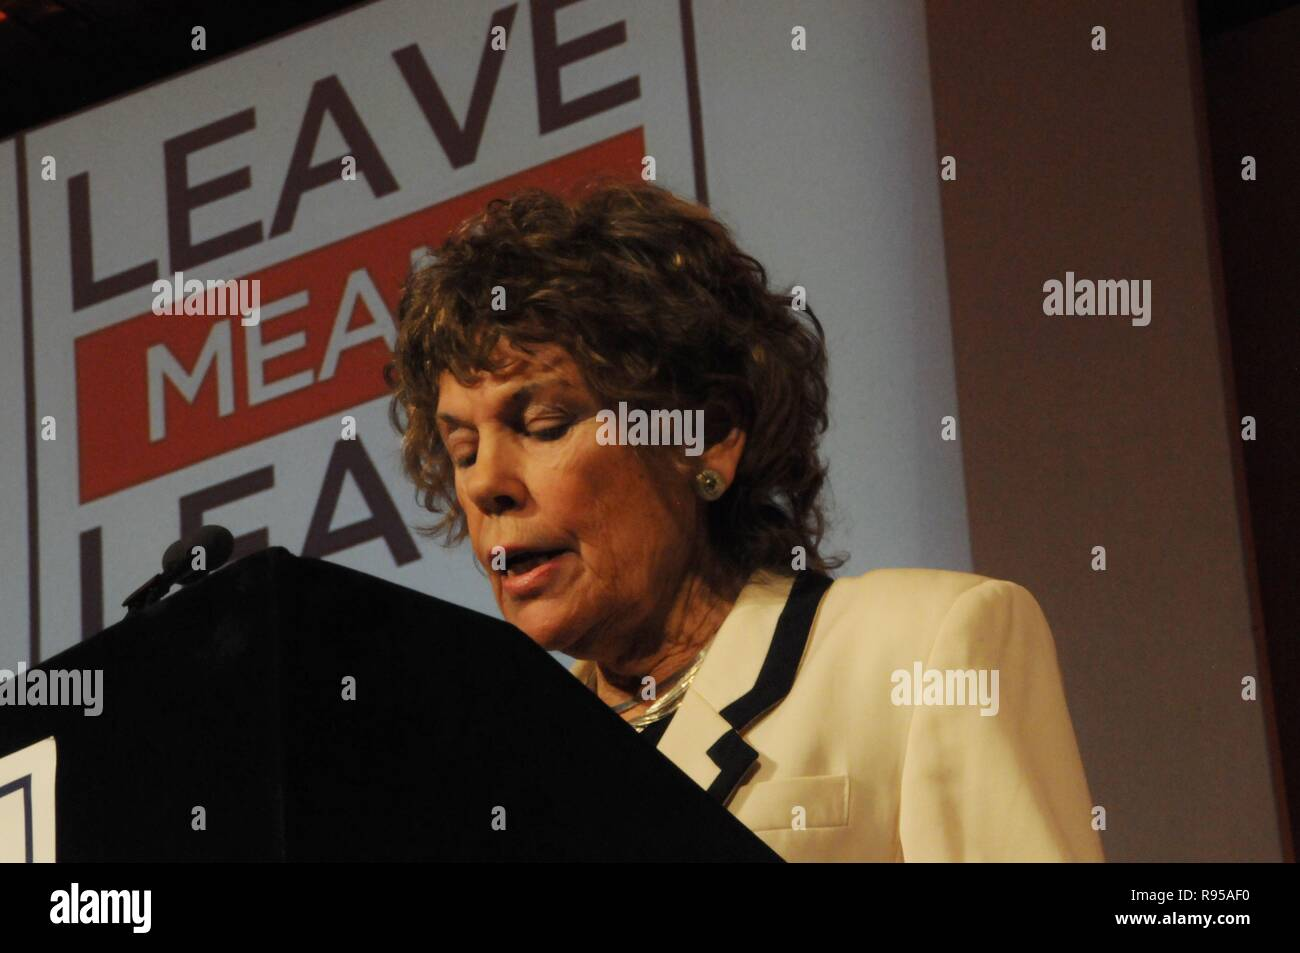 The Labour MP for Vauxhall, Kate Hoey, talks to fellow Brexiteers, at the Leave Means Leave campaign, London - Stock Image